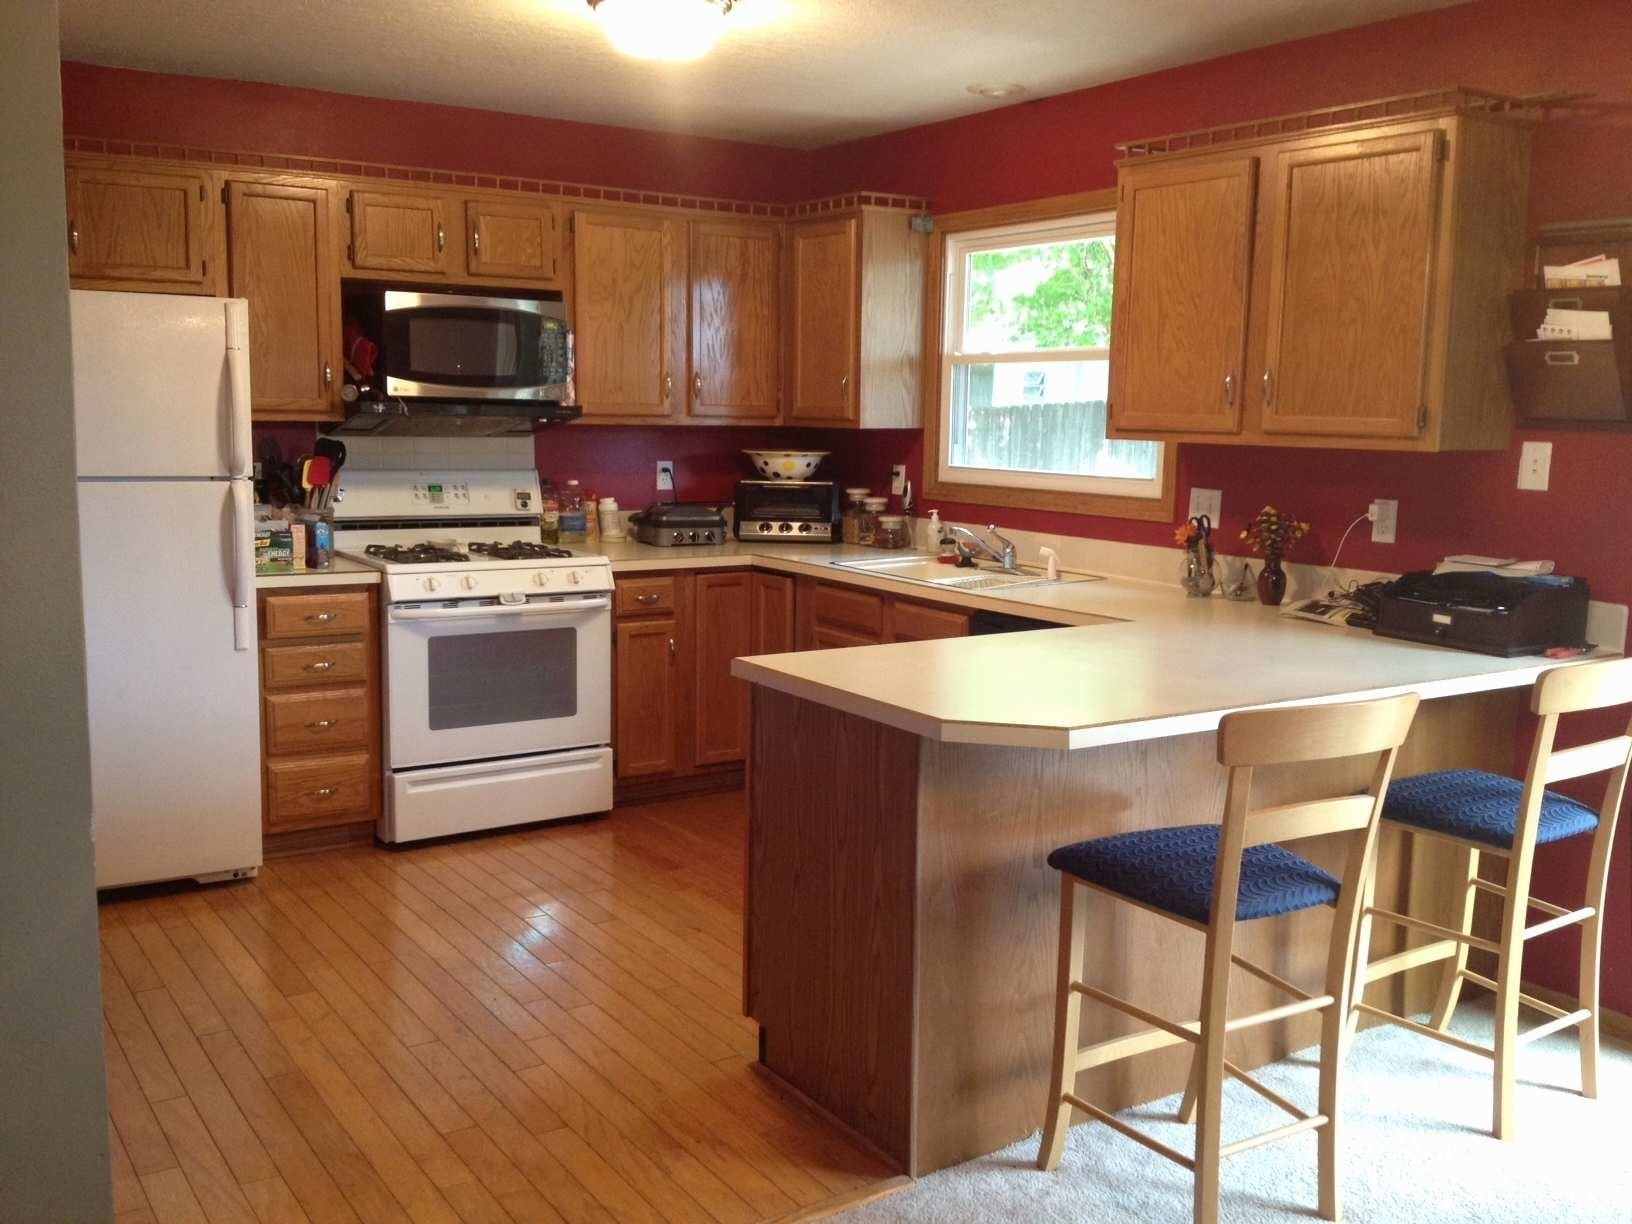 10 Lovable Kitchen Color Ideas With Maple Cabinets kitchen paint colors with maple cabinets awesome kitchen olympus 2020